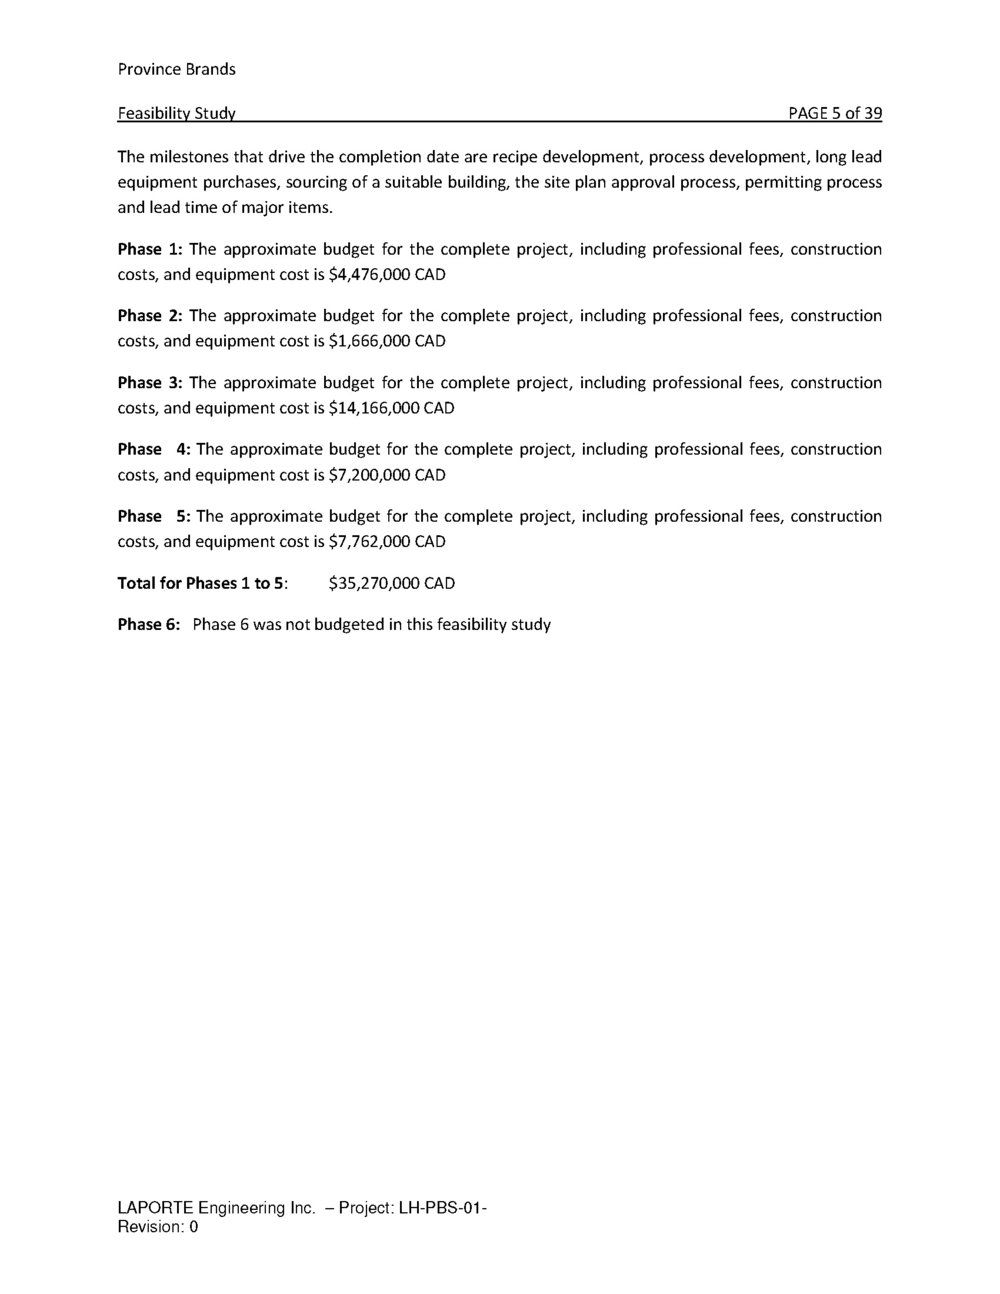 LH-PBS-01_Feasibility Study Report_01_Page_05.jpg